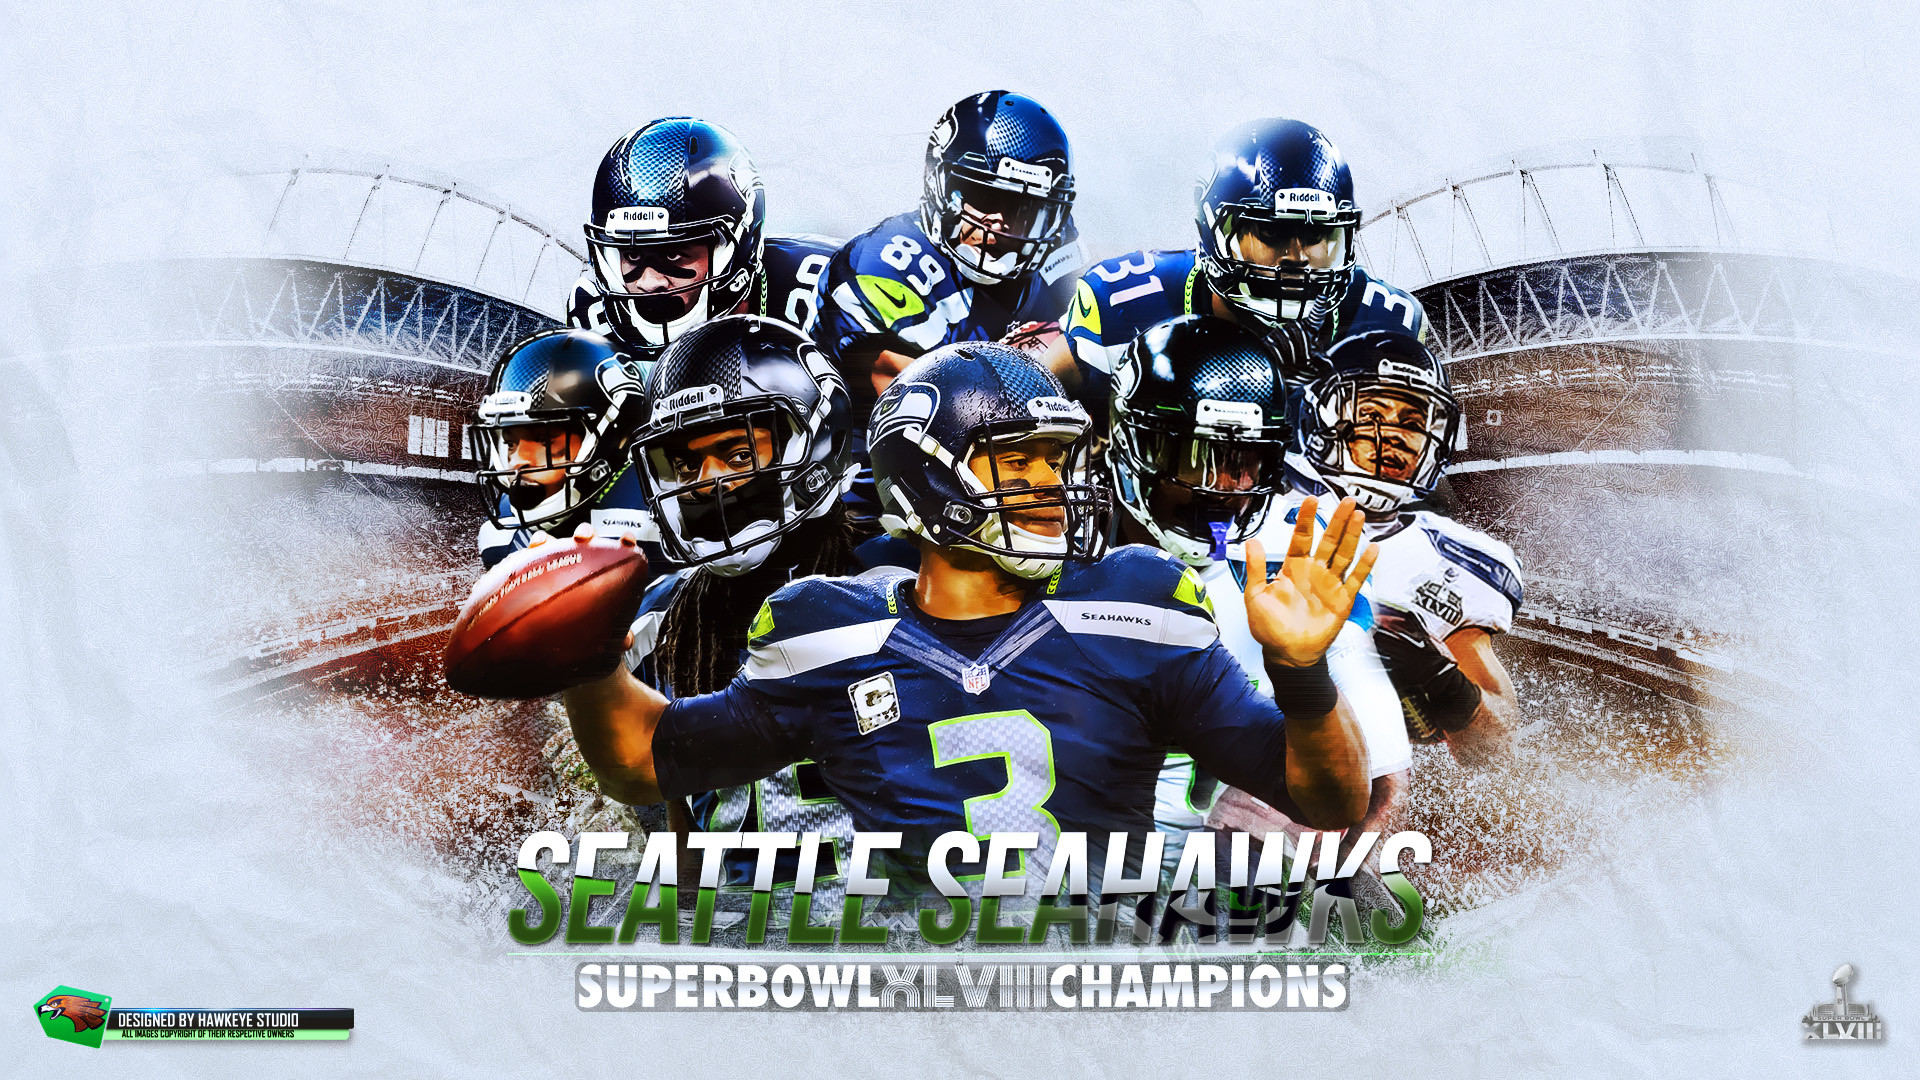 1920x1080 Seattle Seahawk Background Desktop | Wallpapers, Backgrounds, Images .